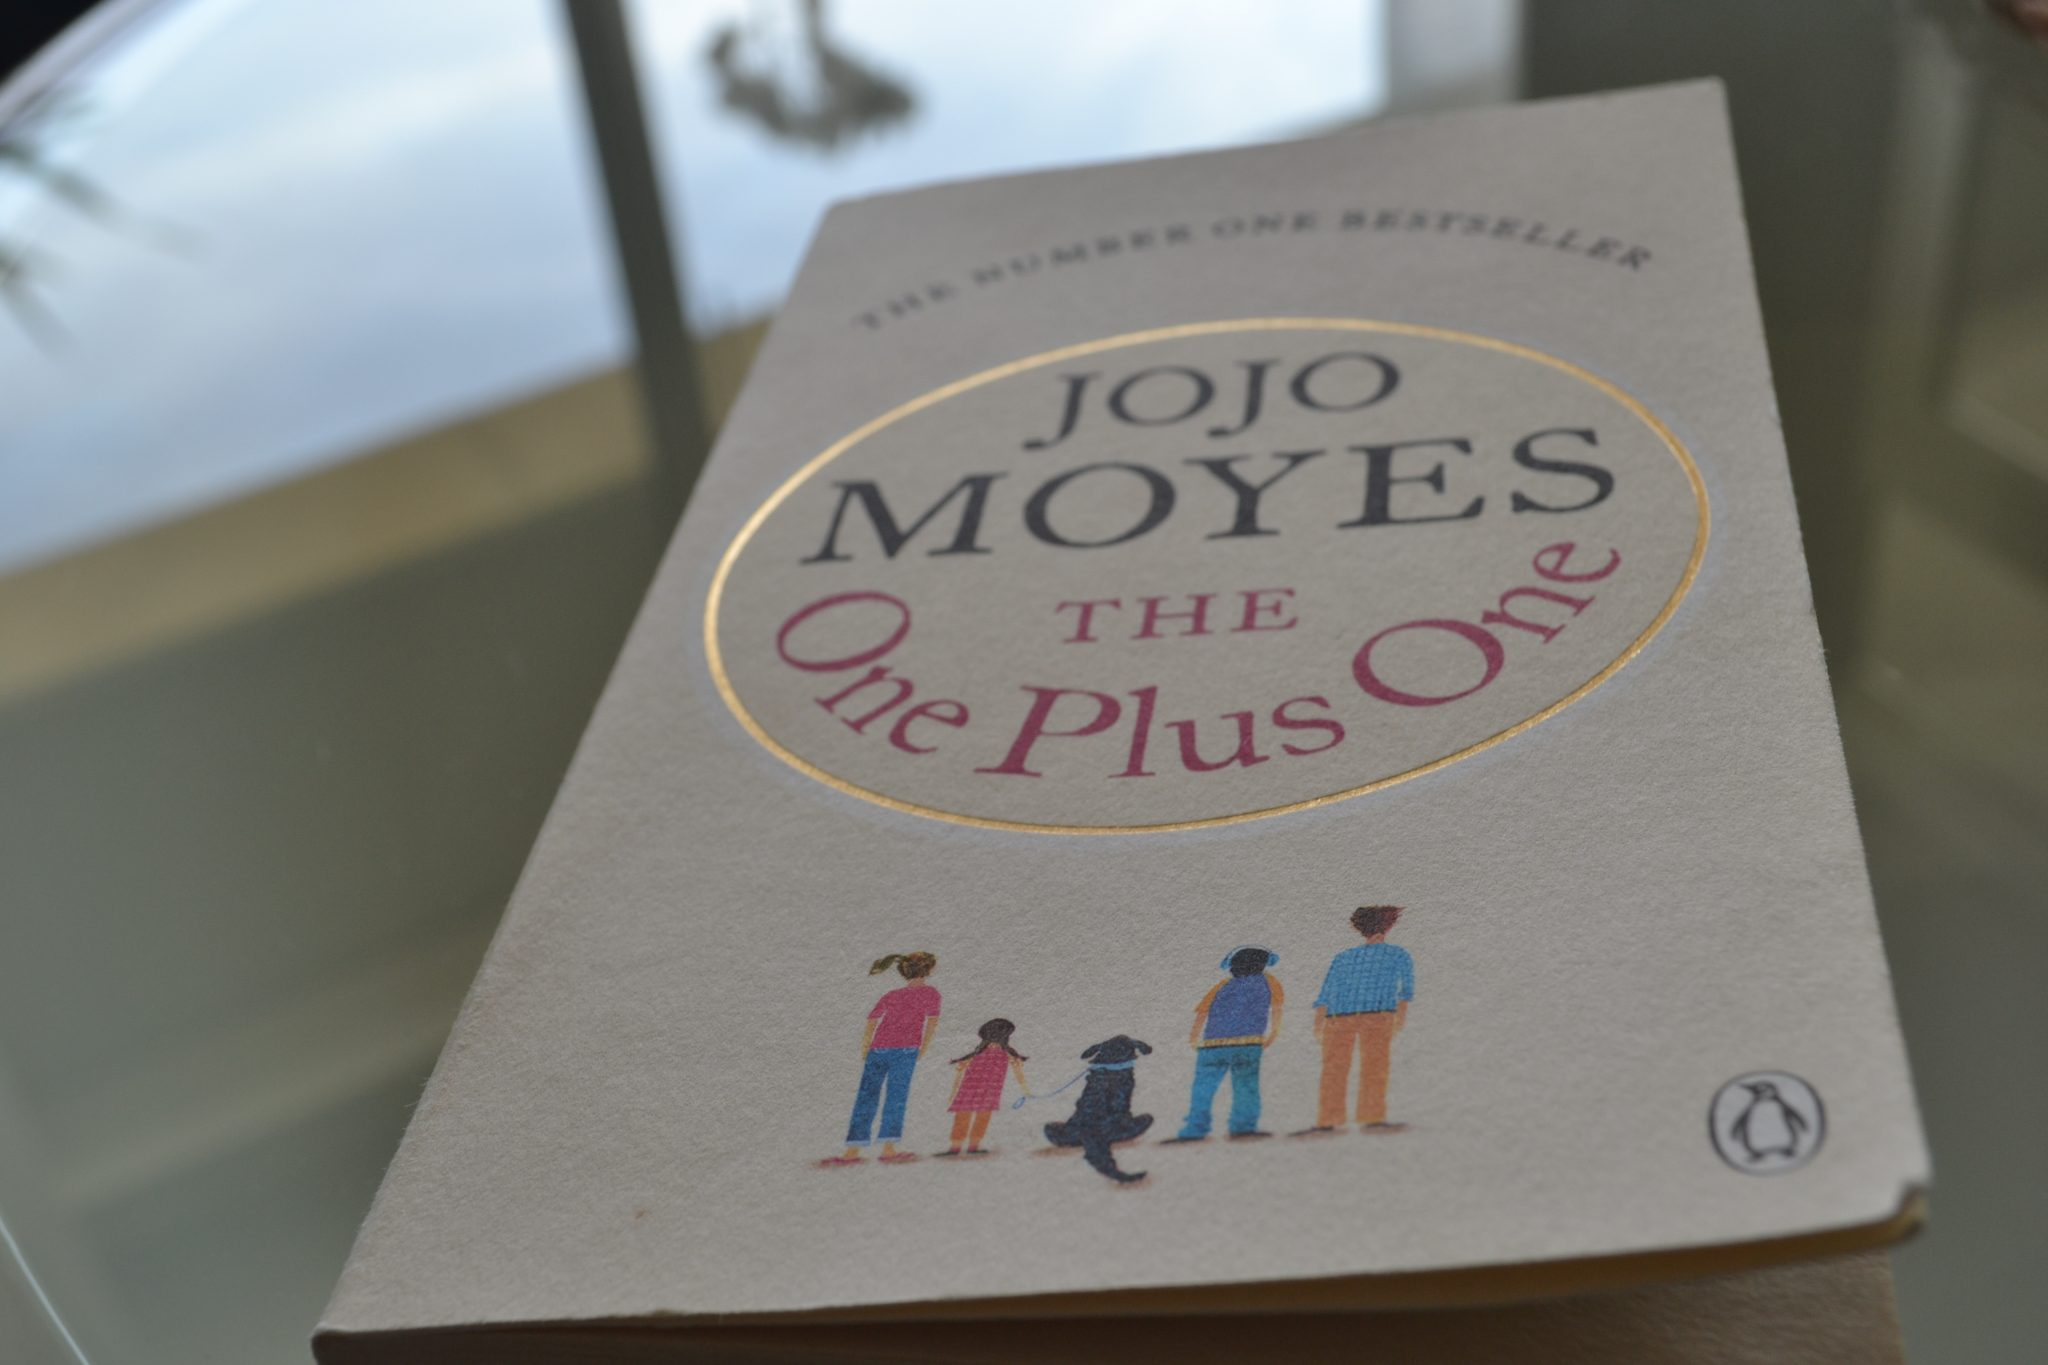 Books: The One Plus One | Jojo Moyes - DSC 03071